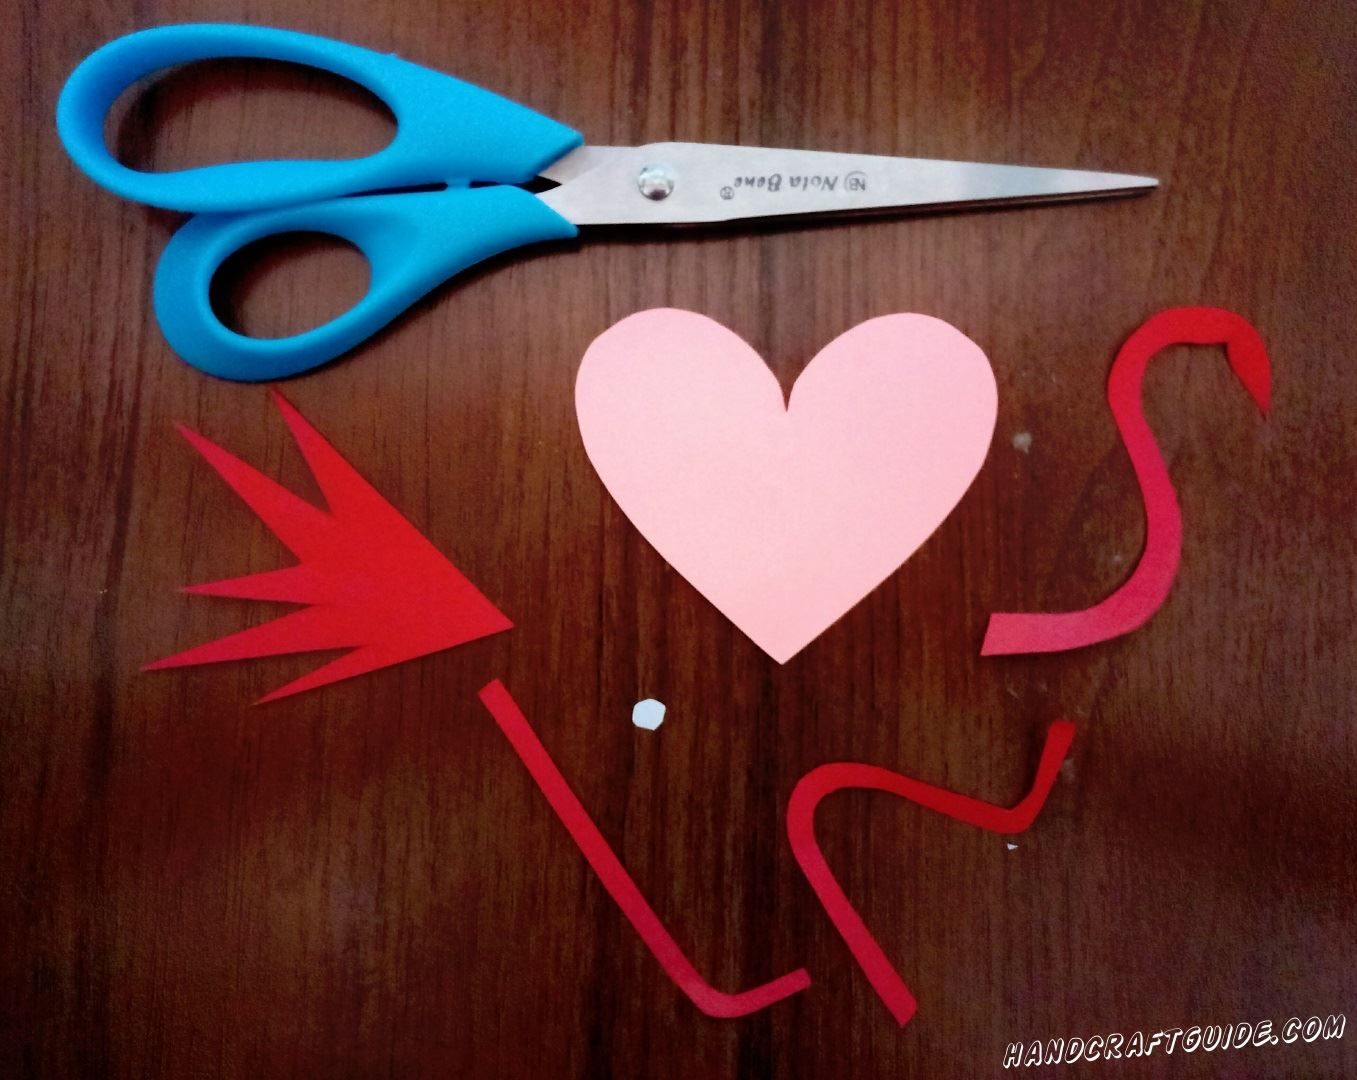 First we cut out the heart from pink paper. Then from red paper 3 wavy lines (legs and neck) and one tail + small eye.